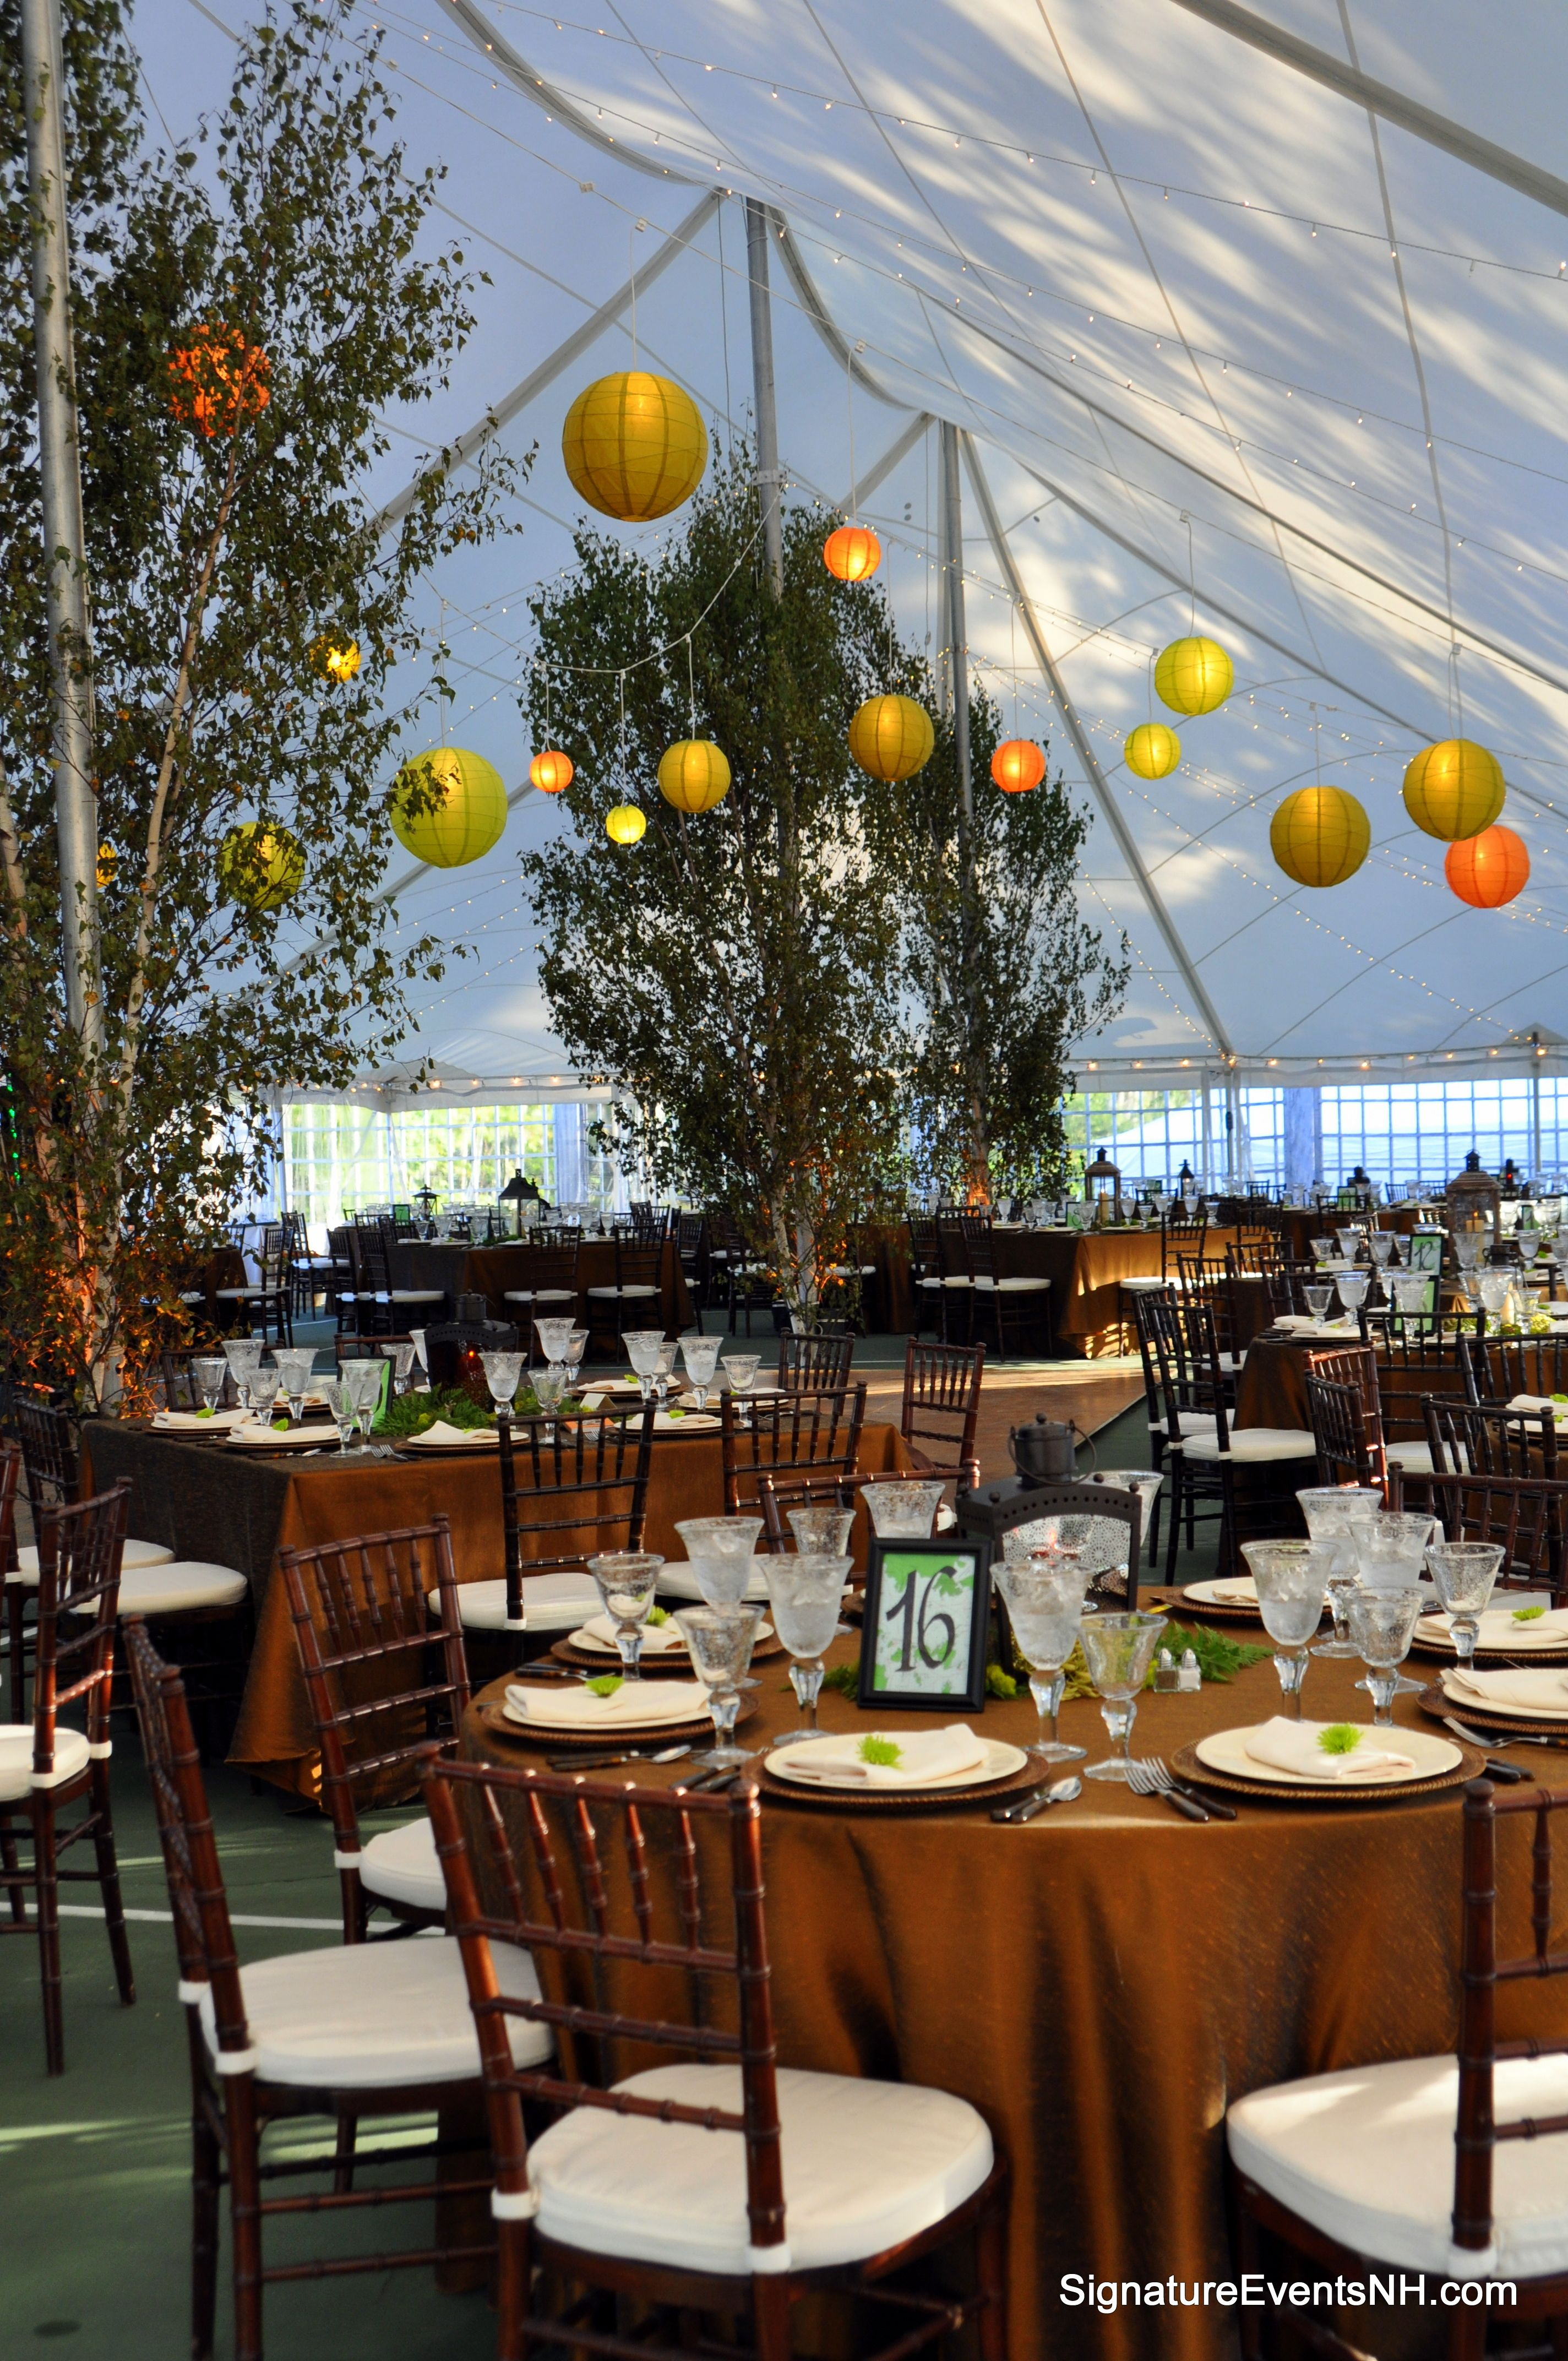 We Transformed A Tennis Court For This Wedding Reception